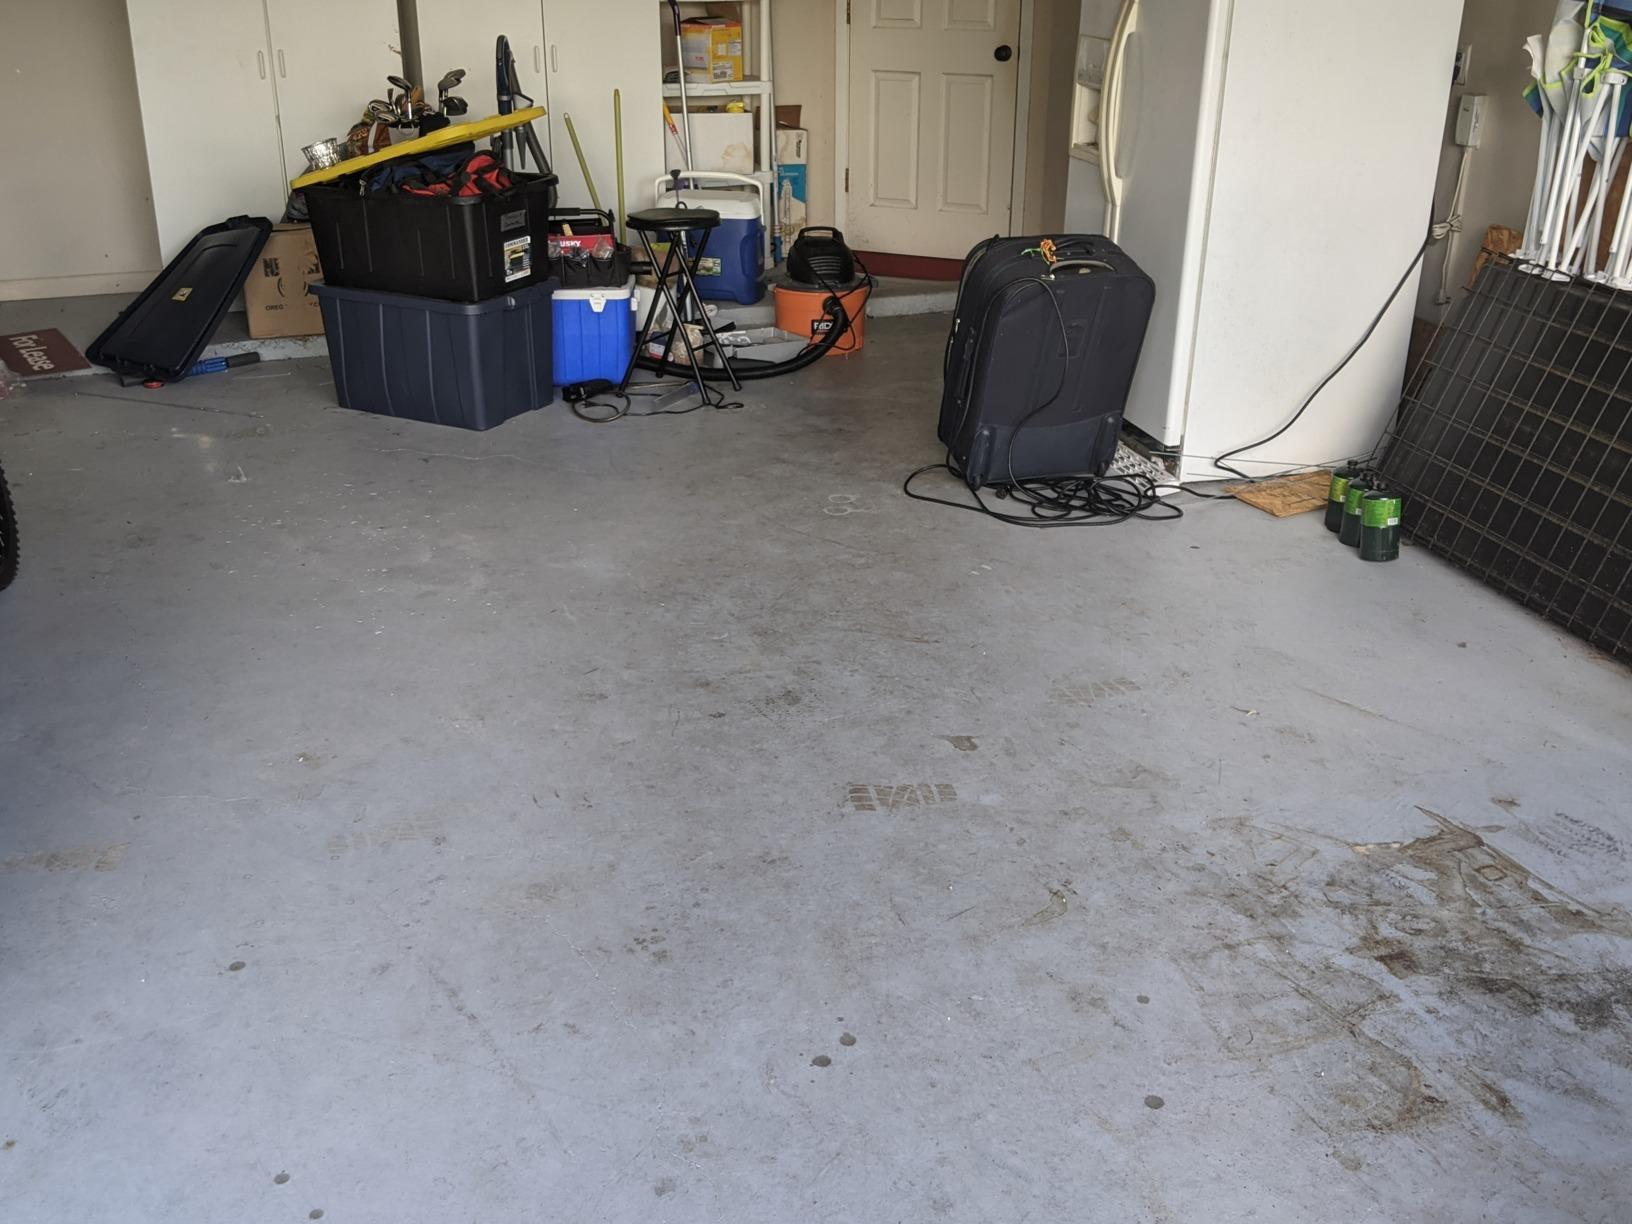 Garage Cleanout in Wesley Chapel, FL! - After Photo